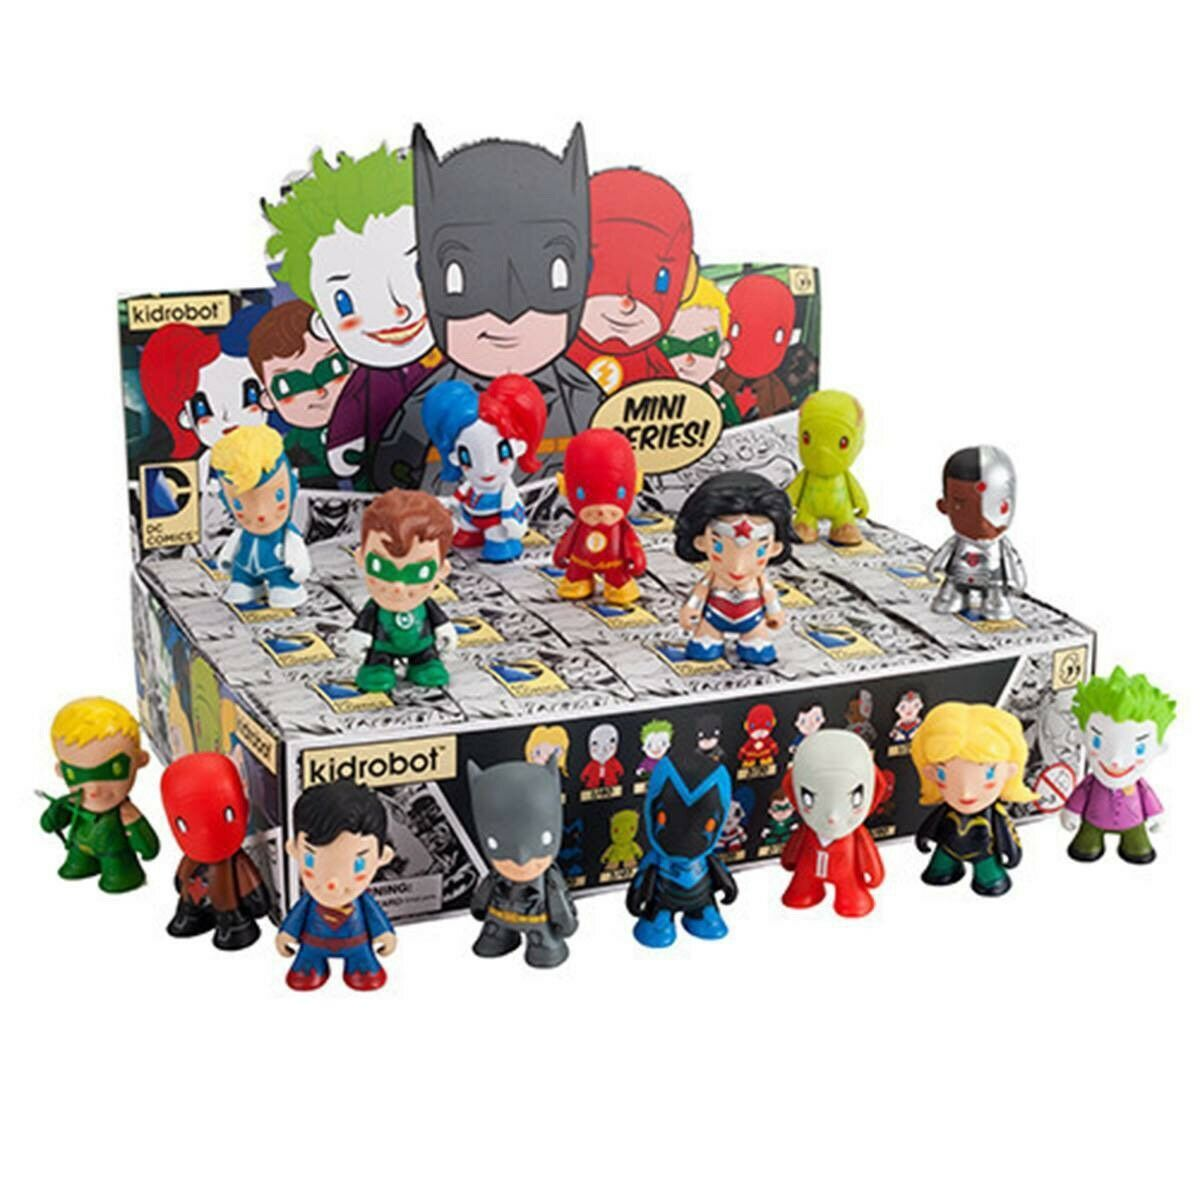 Kidrobot Kidrobot Kidrobot DC Comics - 3  Mini Series - Blind Box Collectibles - Full Set of 15 8556af